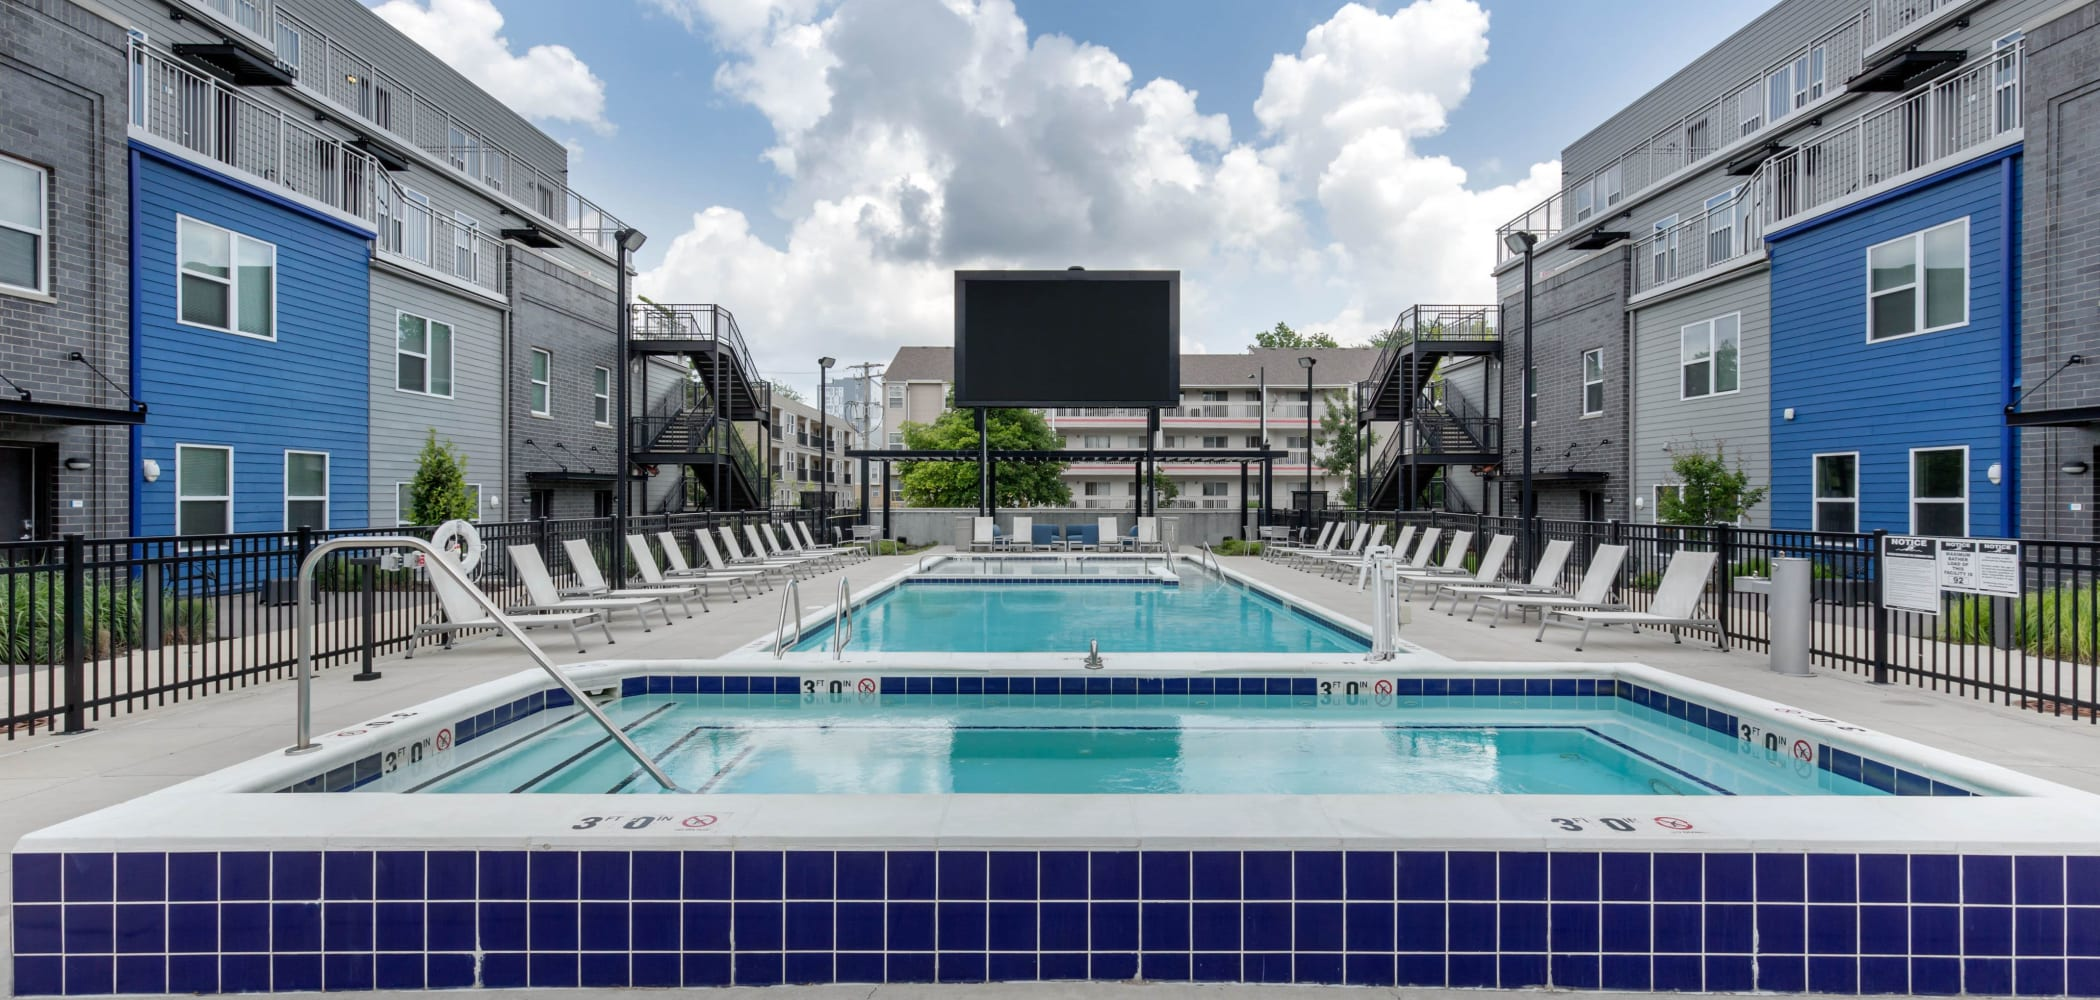 Resort-style swimming pool at West Quad in Champaign, Illinois